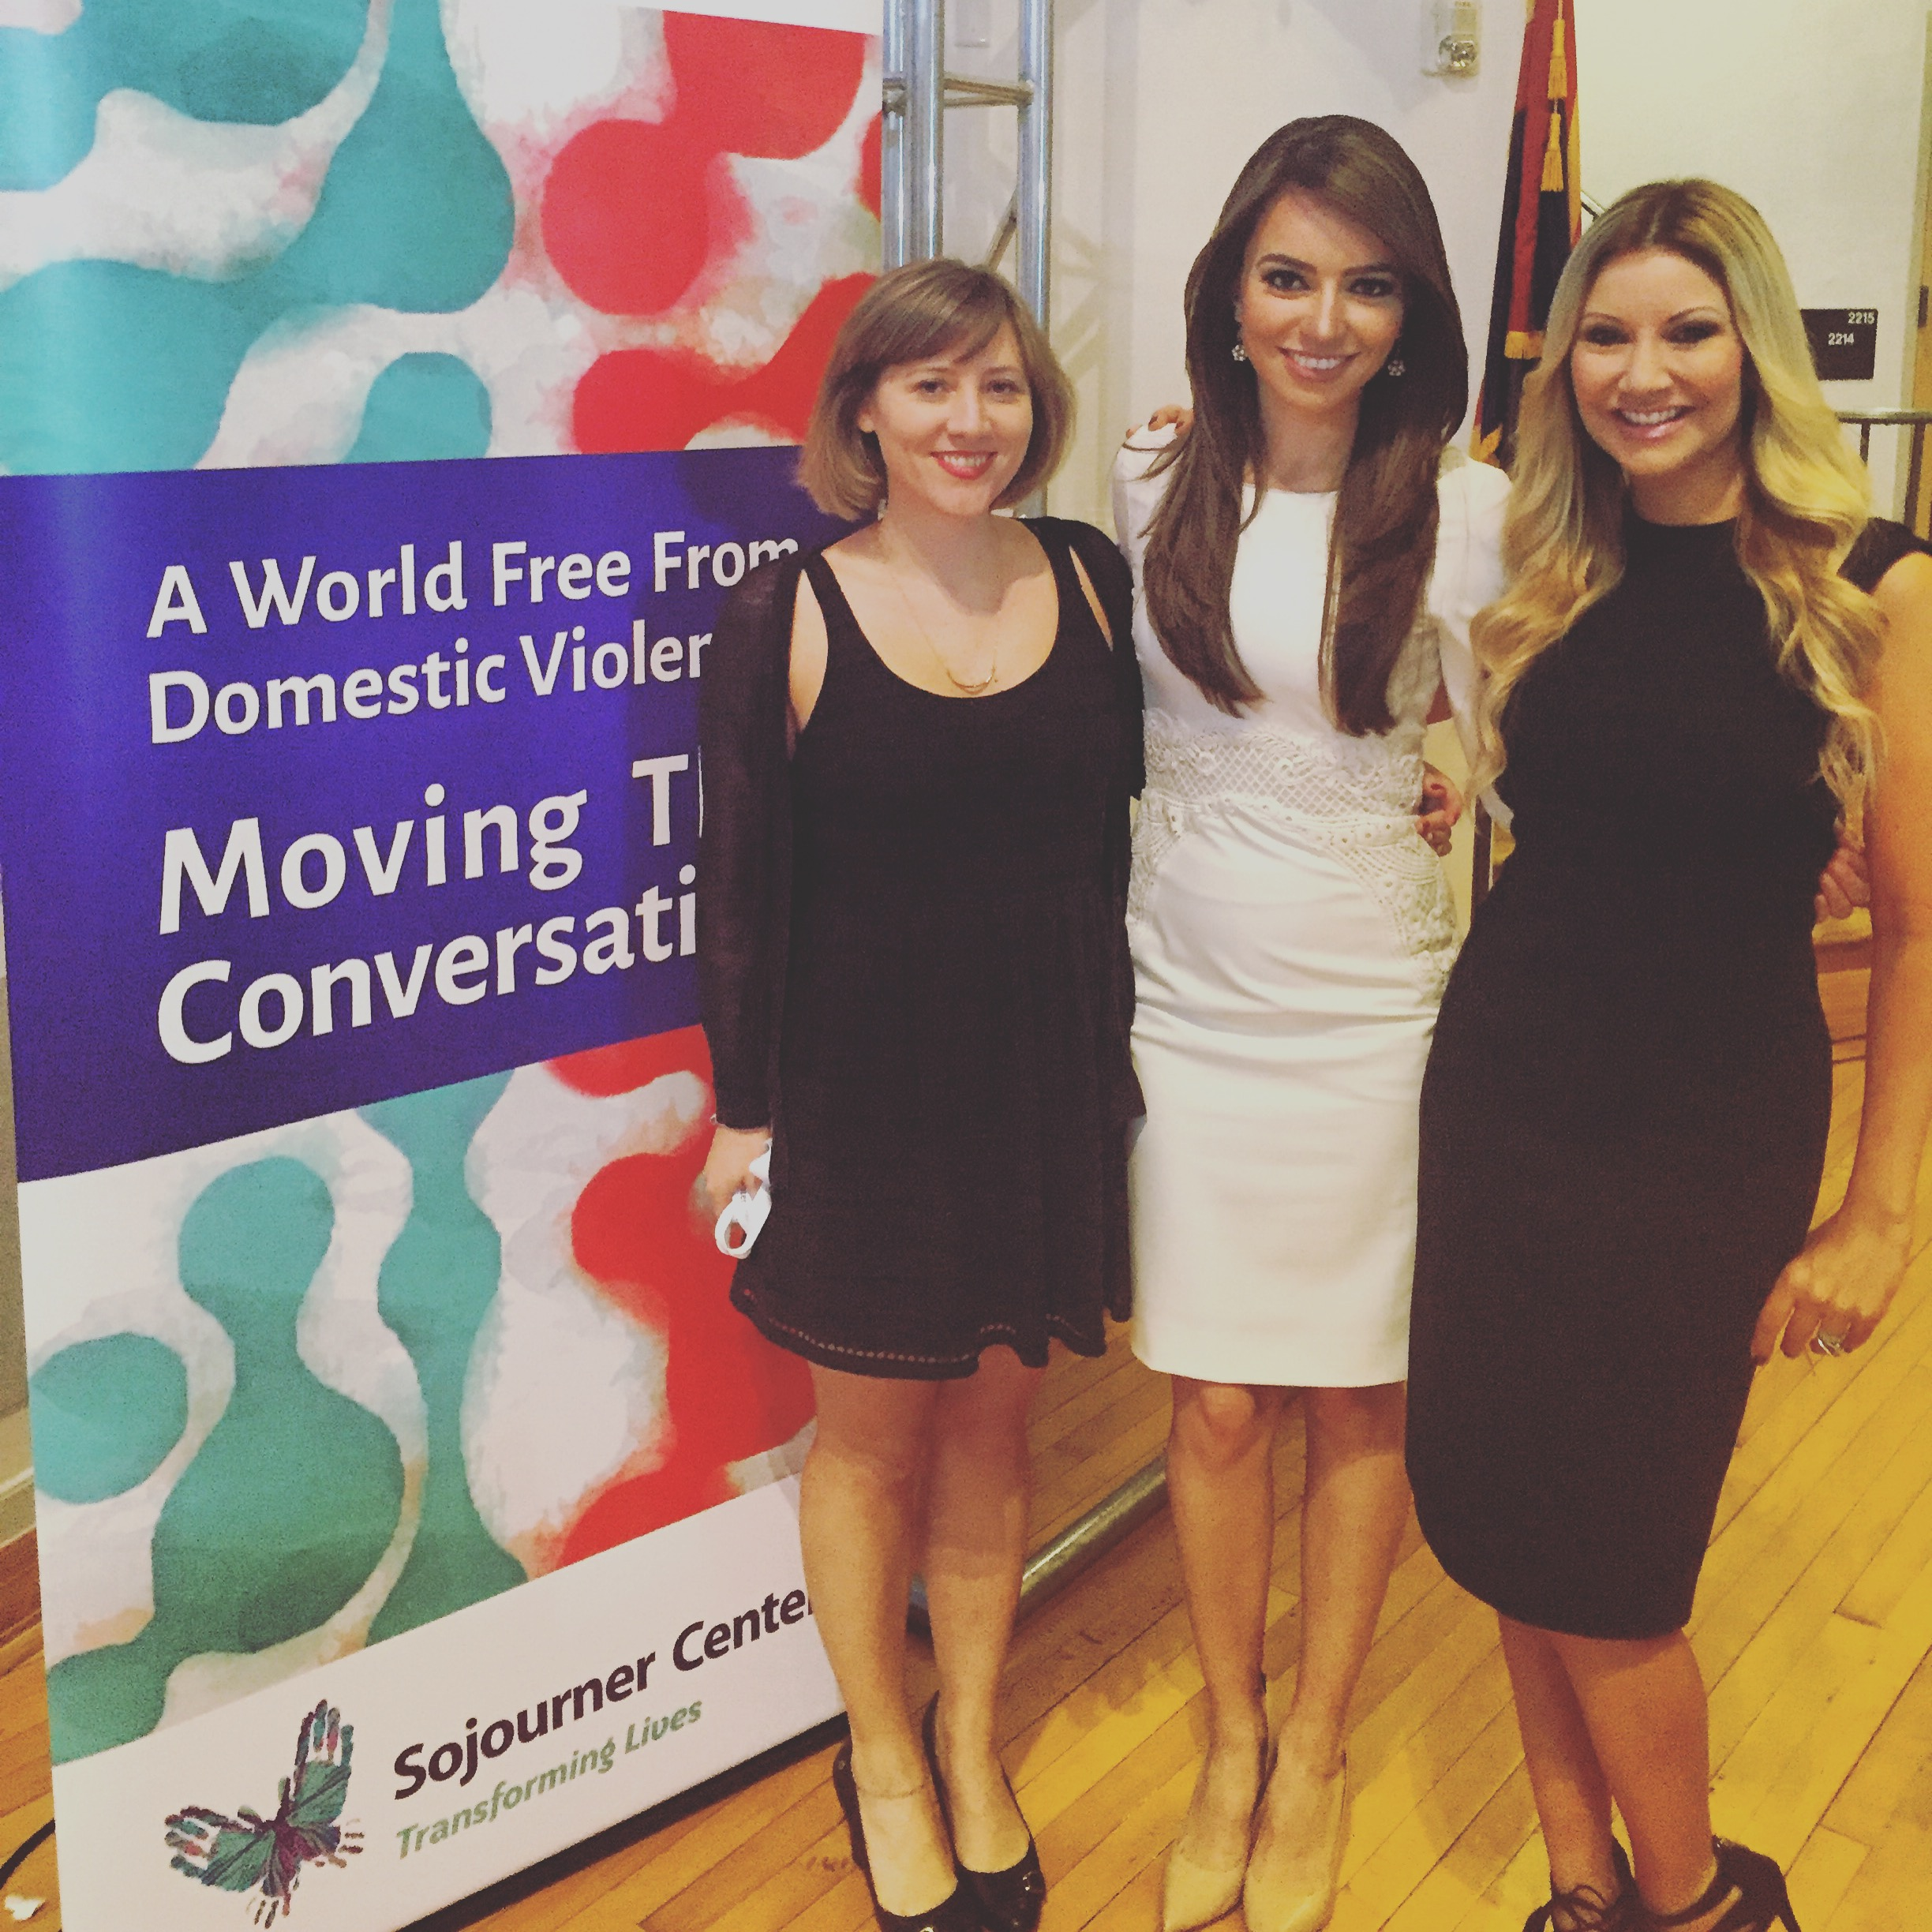 Carey Pena attends Sojourner Center event to fight domestic violence